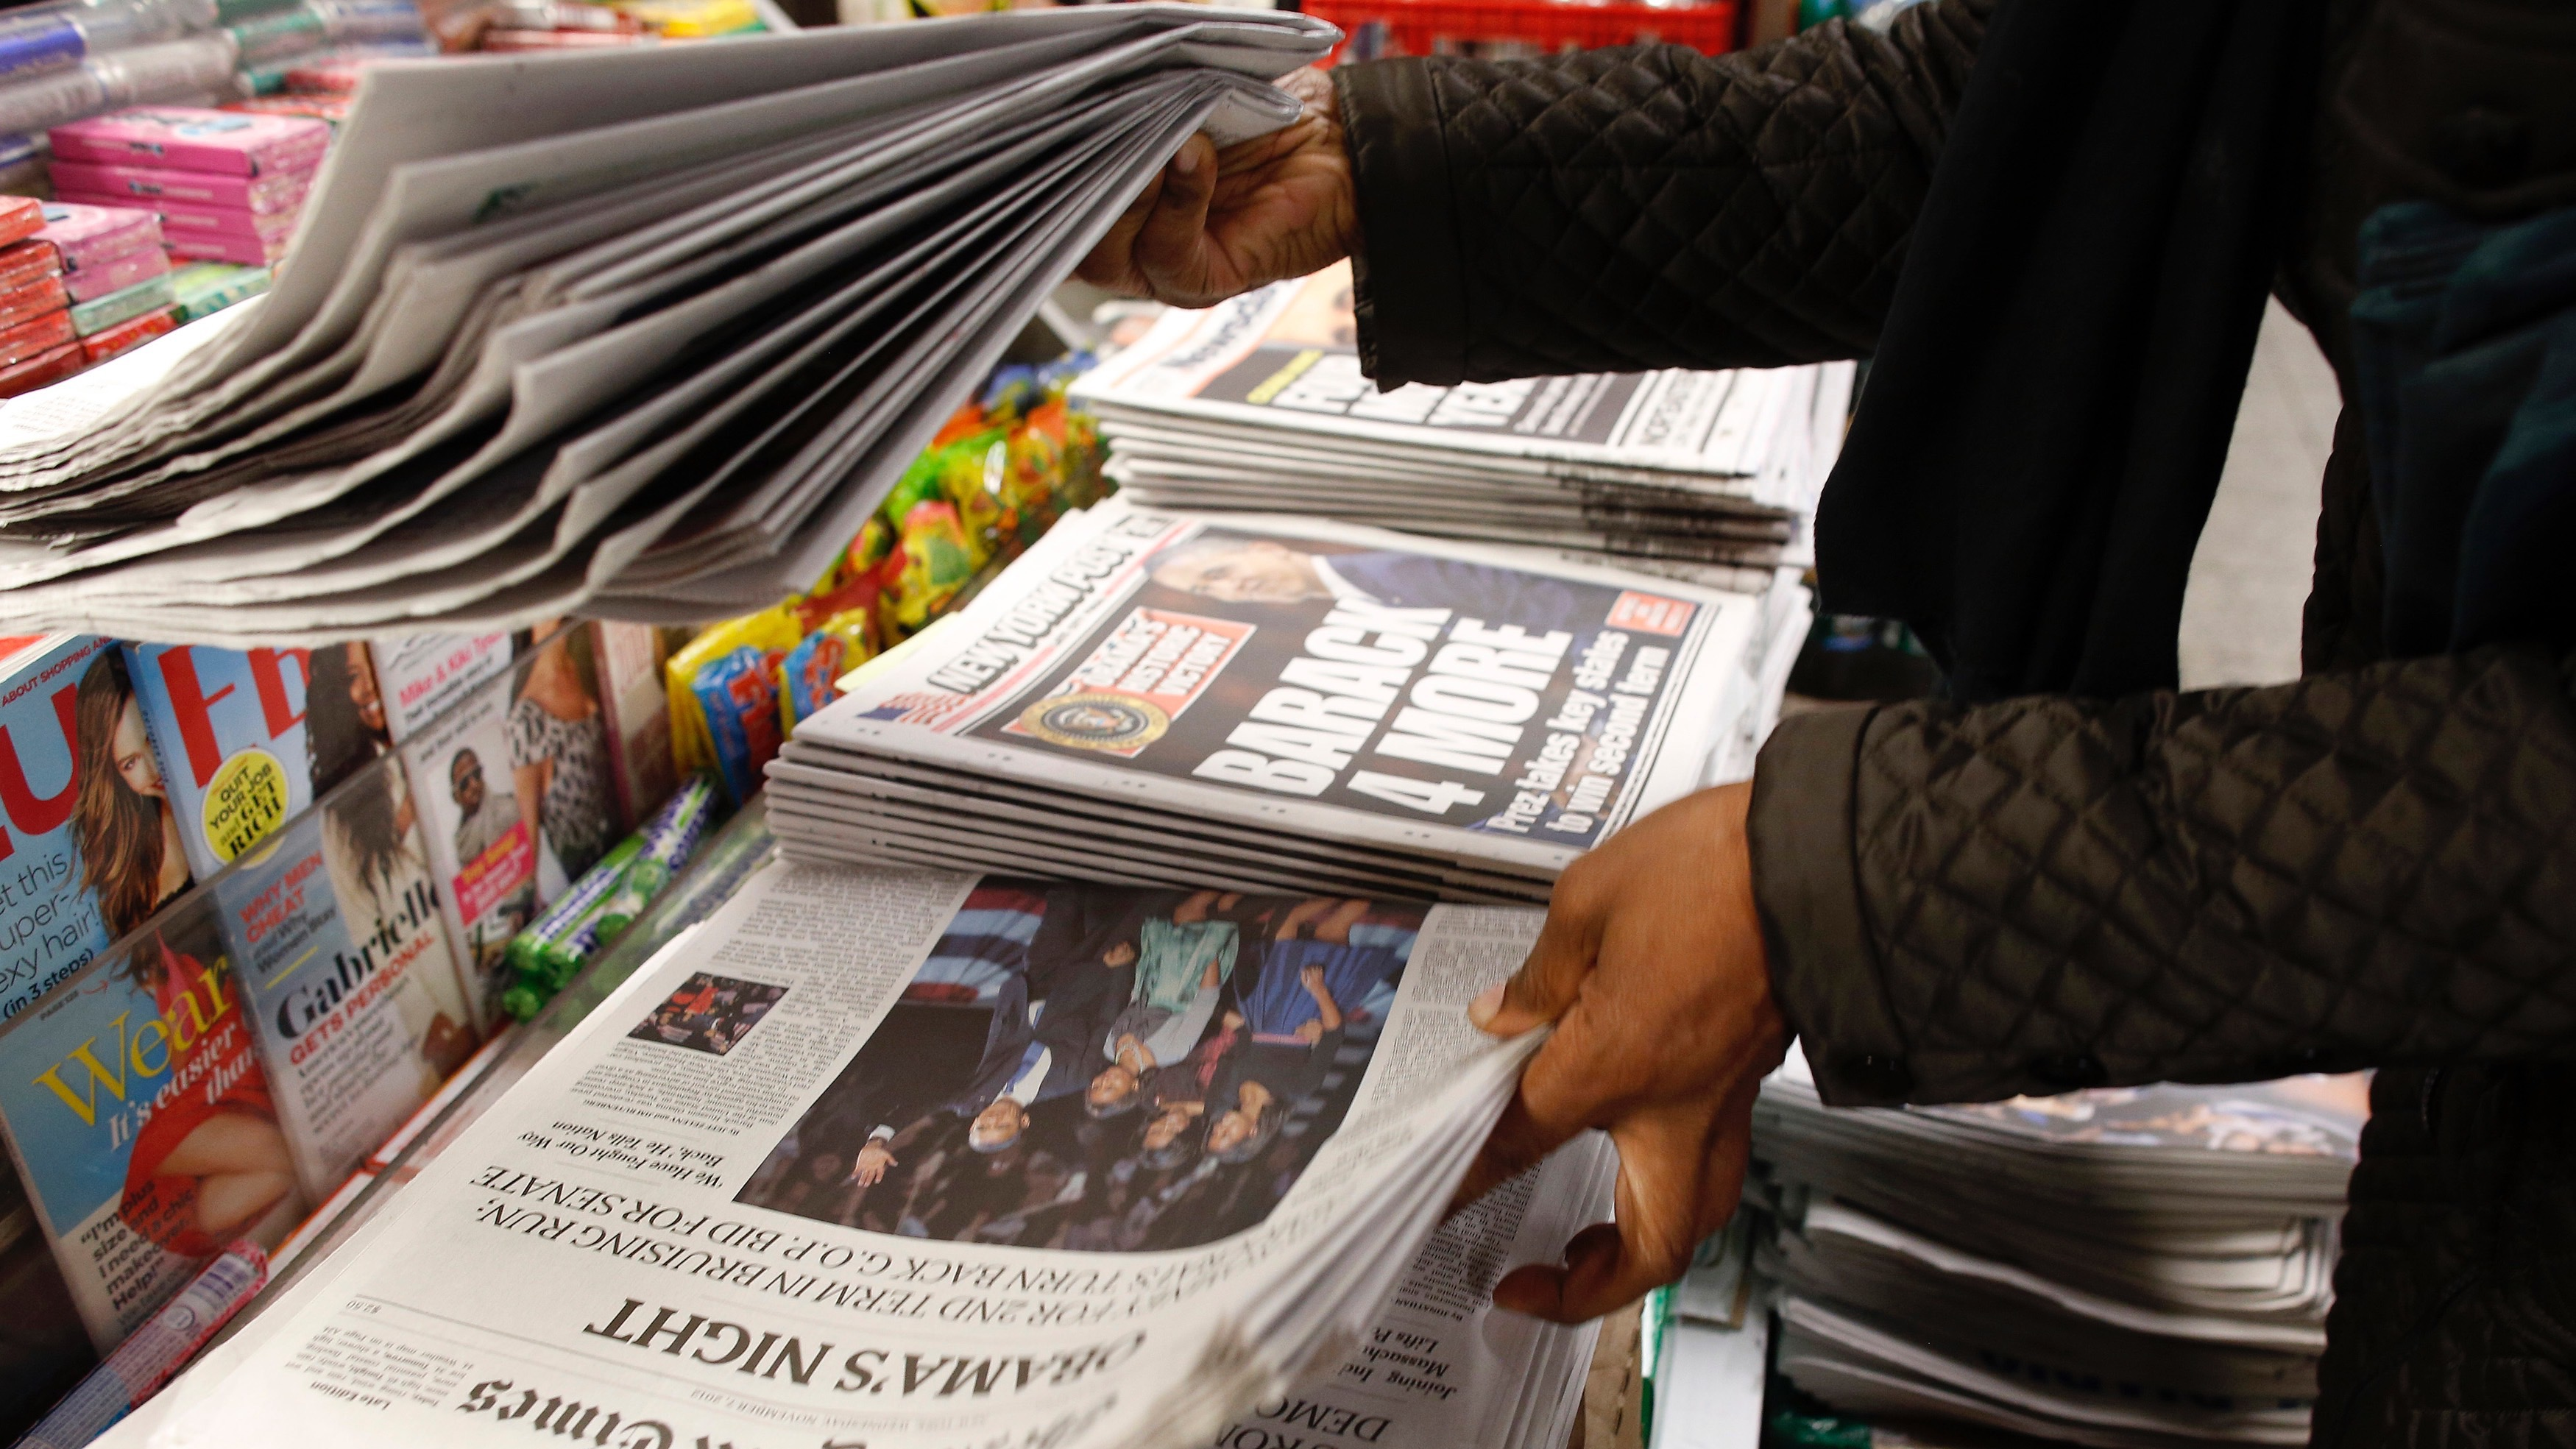 People purchase newspapers showing Barack Obama winning the U.S. presidential election on their frontpages, at a news stand in Times Square, New York November 7, 2012.  Growing optimism about the economy and a big turnout of the core Democratic coalition sealed President Barack Obama's re-election victory over Republican challenger Mitt Romney on Wednesday. REUTERS/Chip East (UNITED STATES - Tags: POLITICS USA PRESIDENTIAL ELECTION ELECTIONS MEDIA) - RTR3A4M3